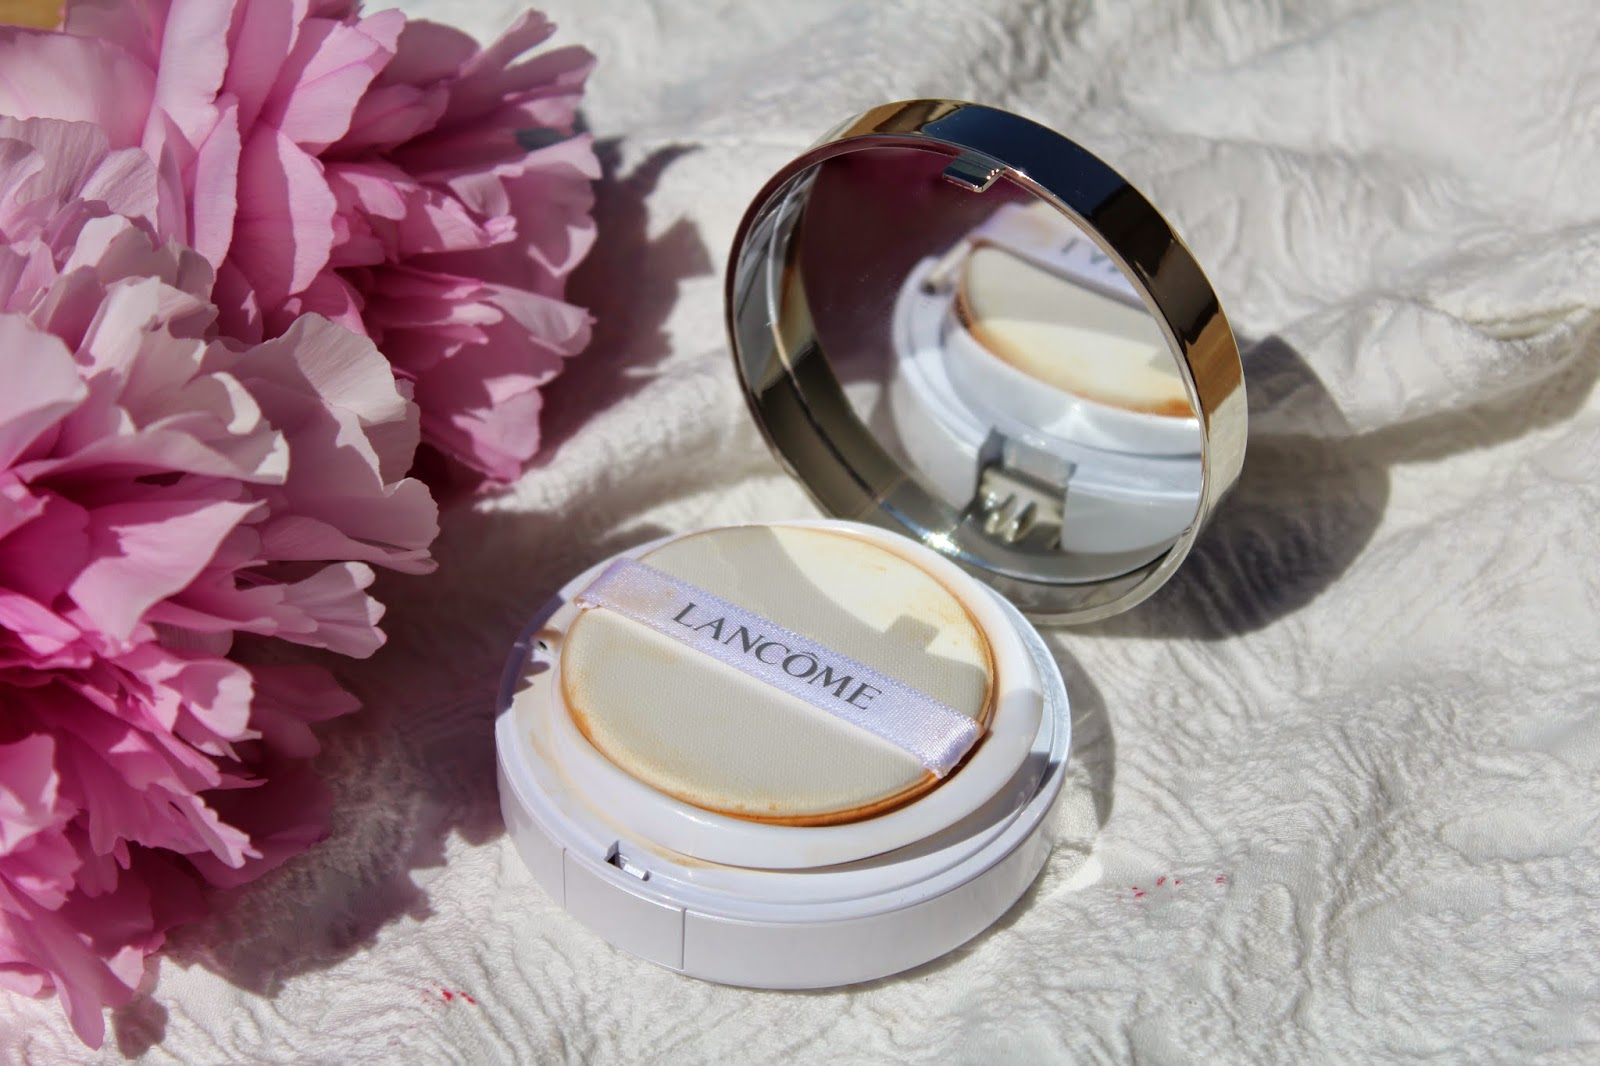 LANCOME MIRACLE CUSHION:  REVIEW